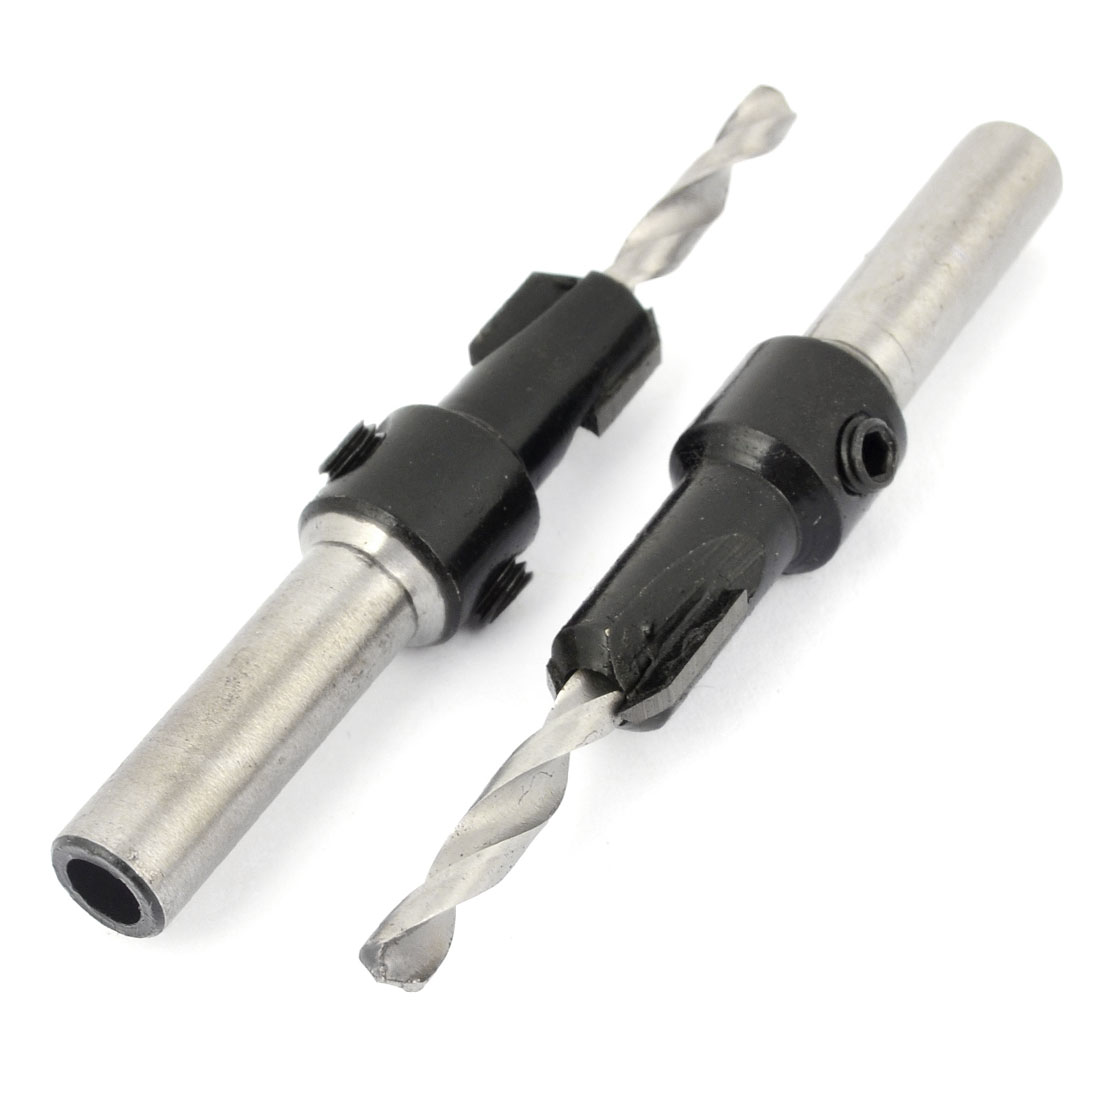 "2pcs 8mm Dia Shank Woodworking 4mmx10mm Countersink Drill Bit 3.1"" Long"